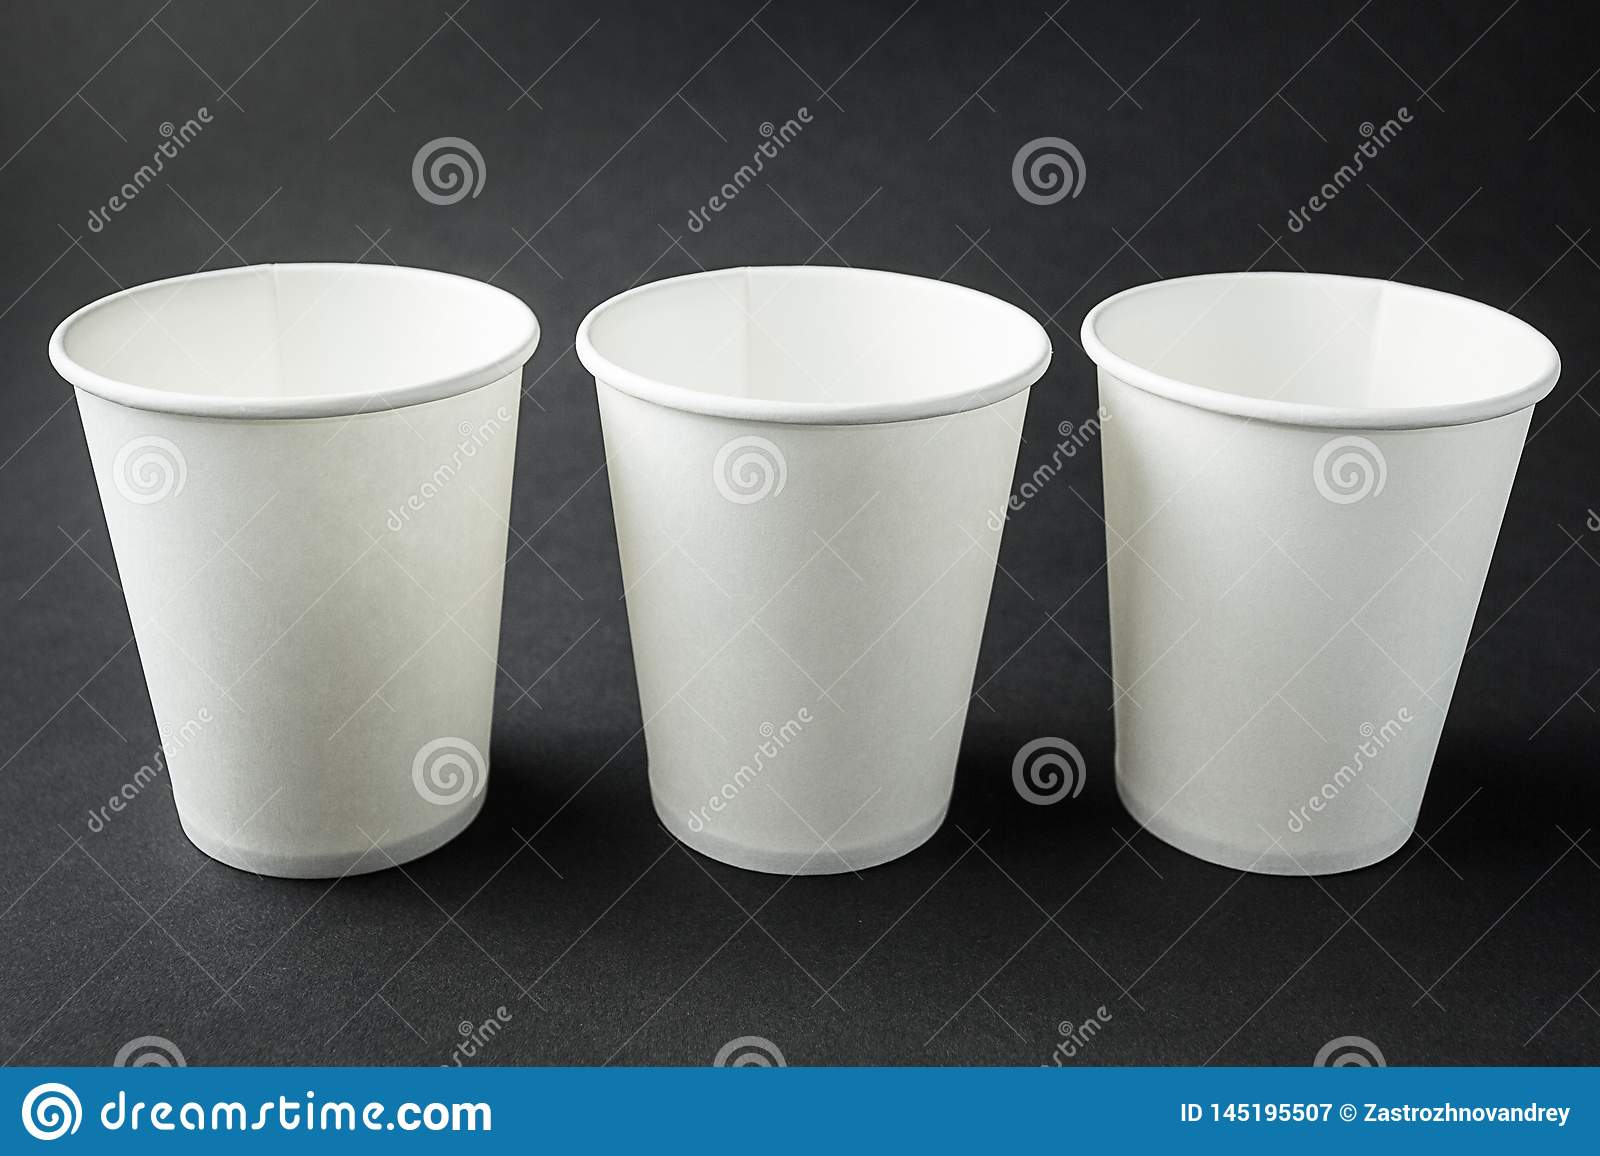 Three take away white paper cups for hot coffee, tea, juice and other beverages isolated on black. Retail mockup presentation